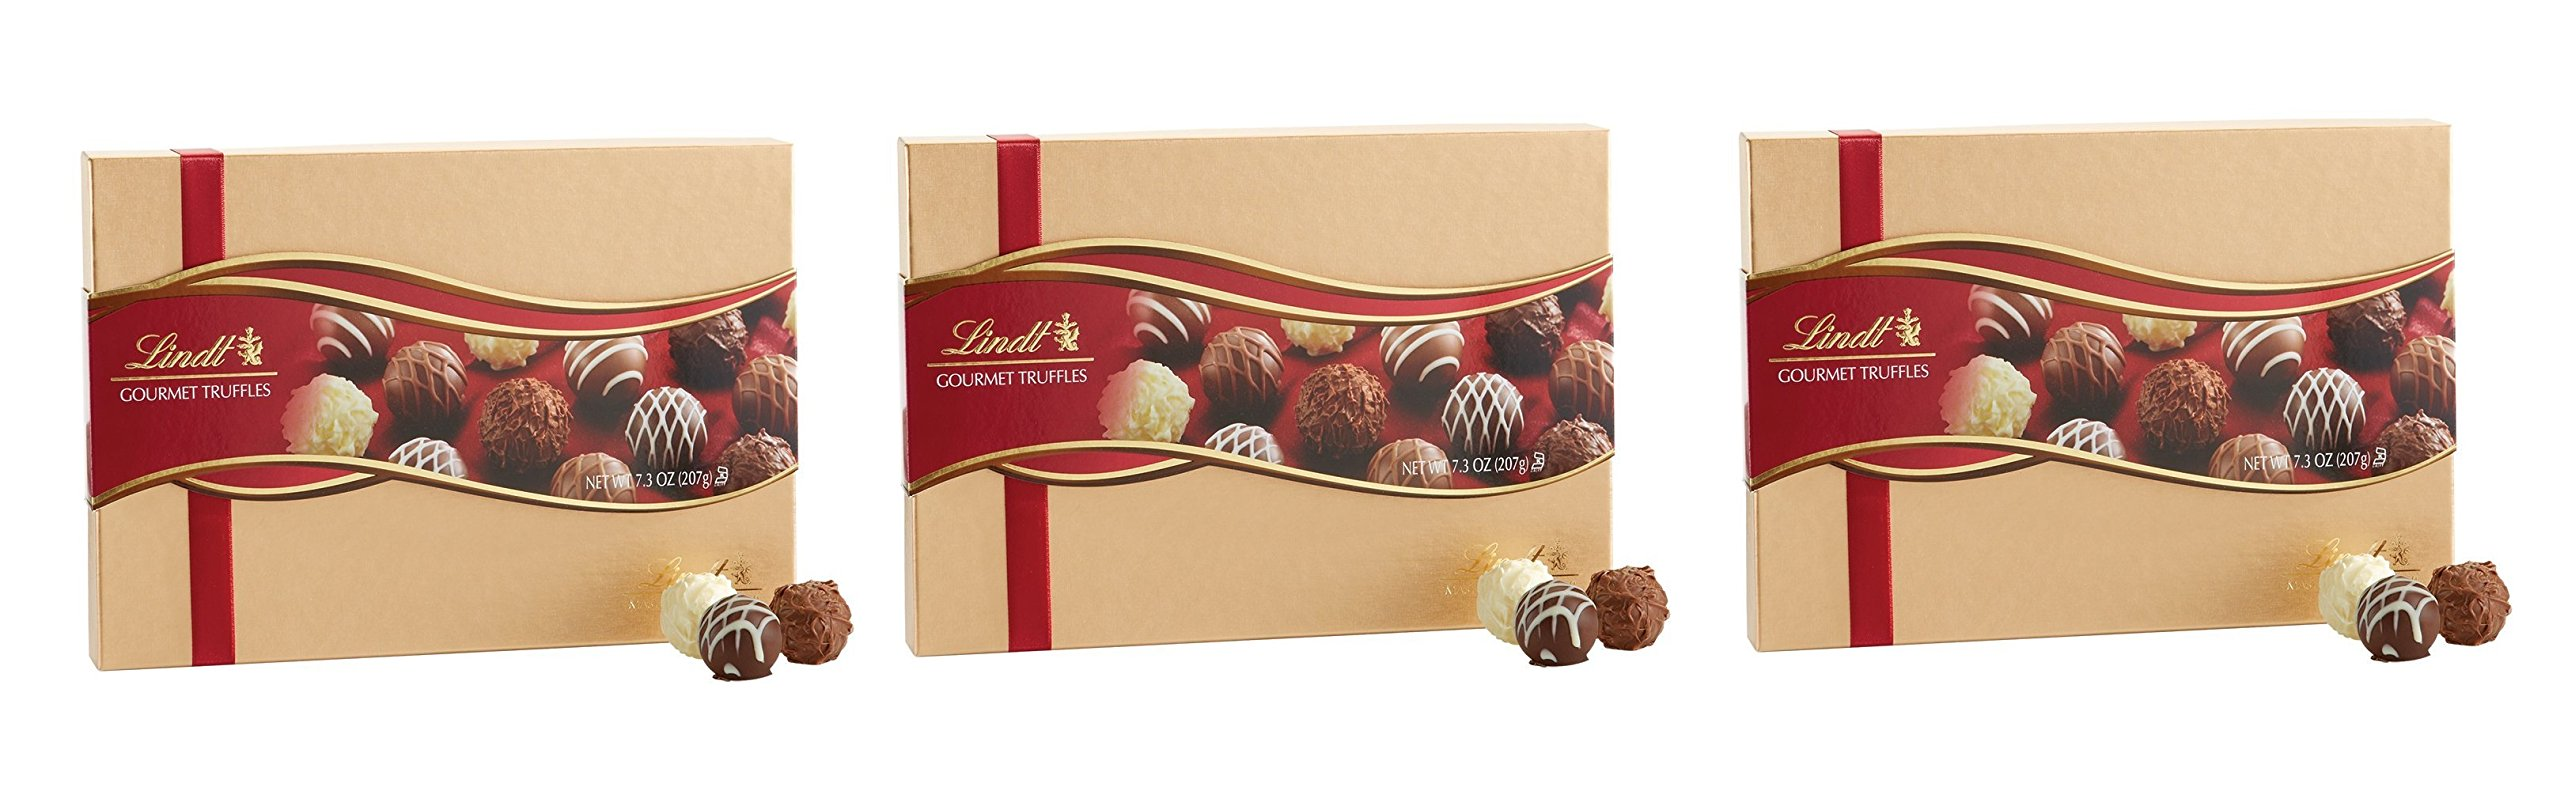 Lindt Lindor Assorted Chocolate Gourmet Truffles, 7.3 oz (Pack of 3)